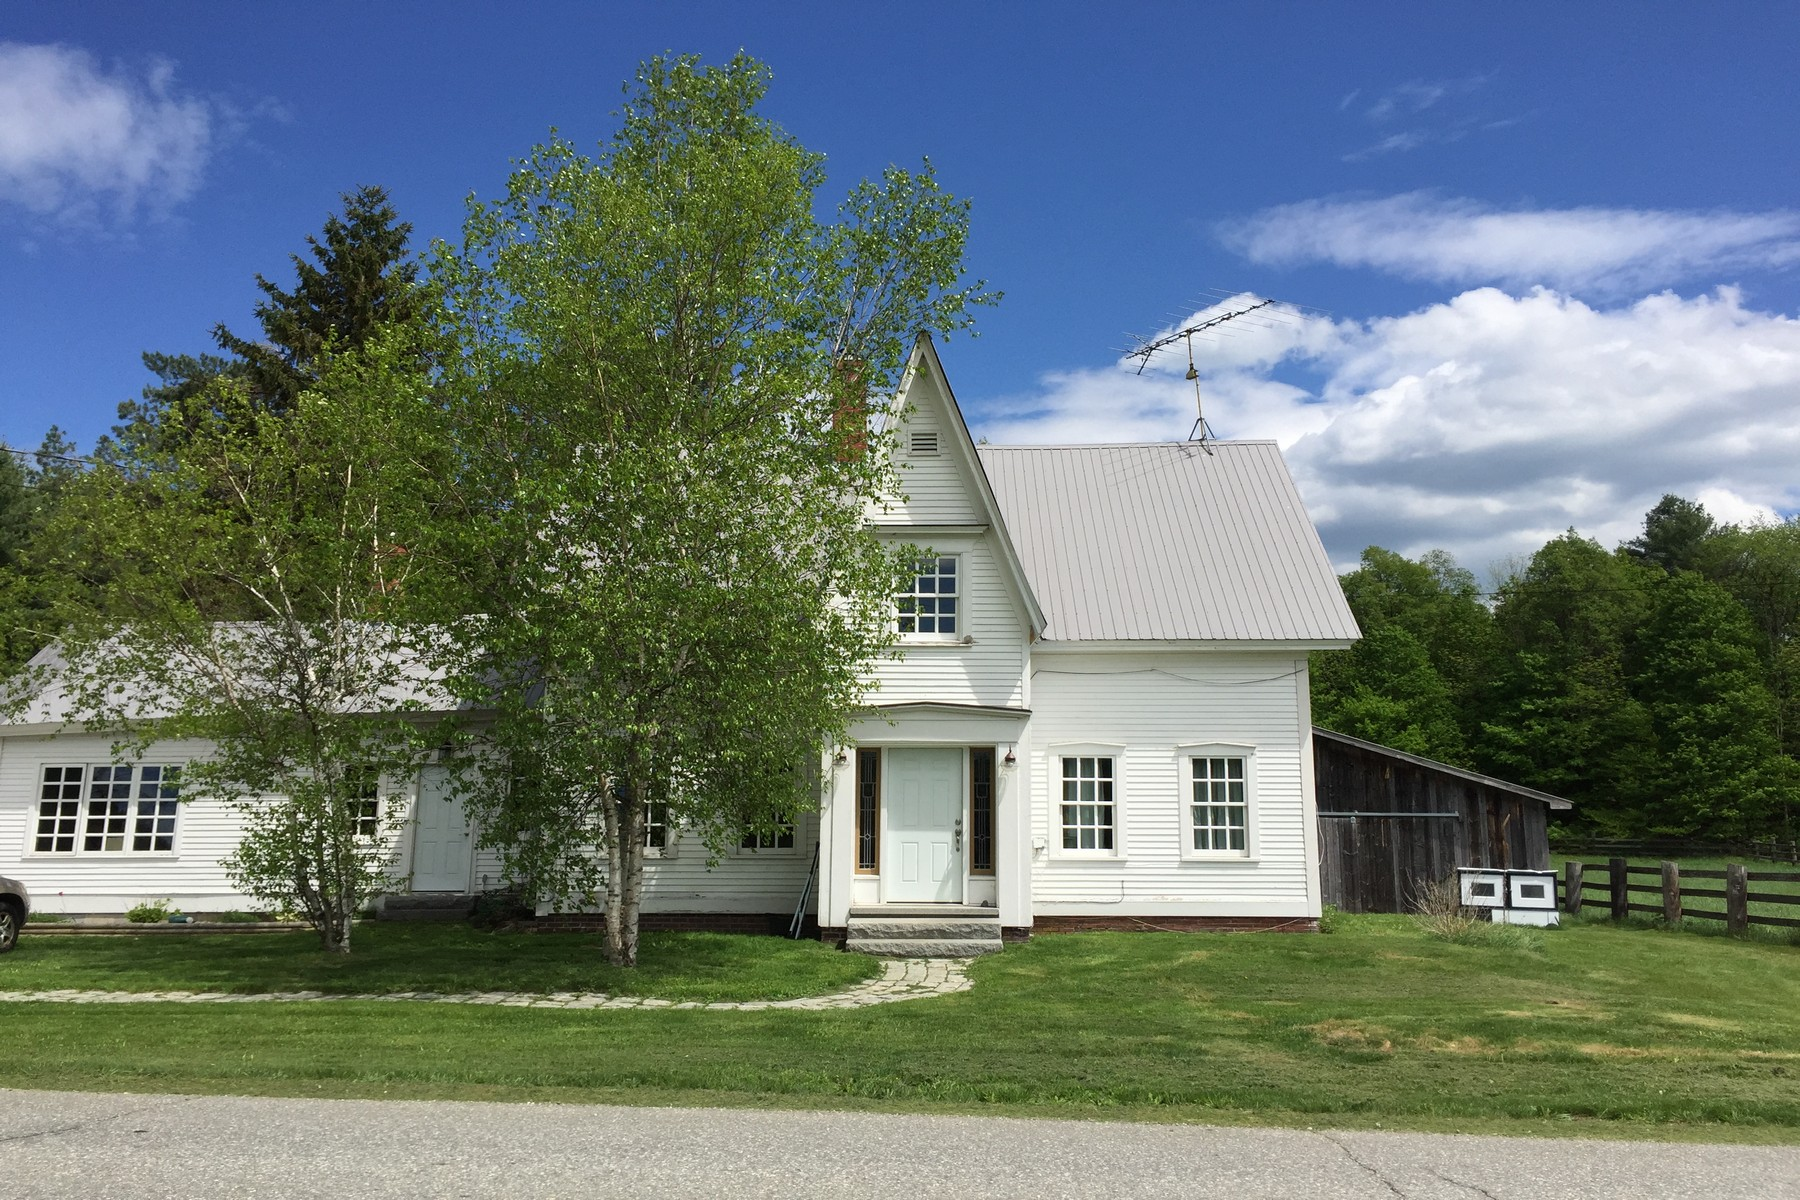 Single Family Home for Sale at 2231 Randolph Rd, Morristown Morristown, Vermont, 05661 United States